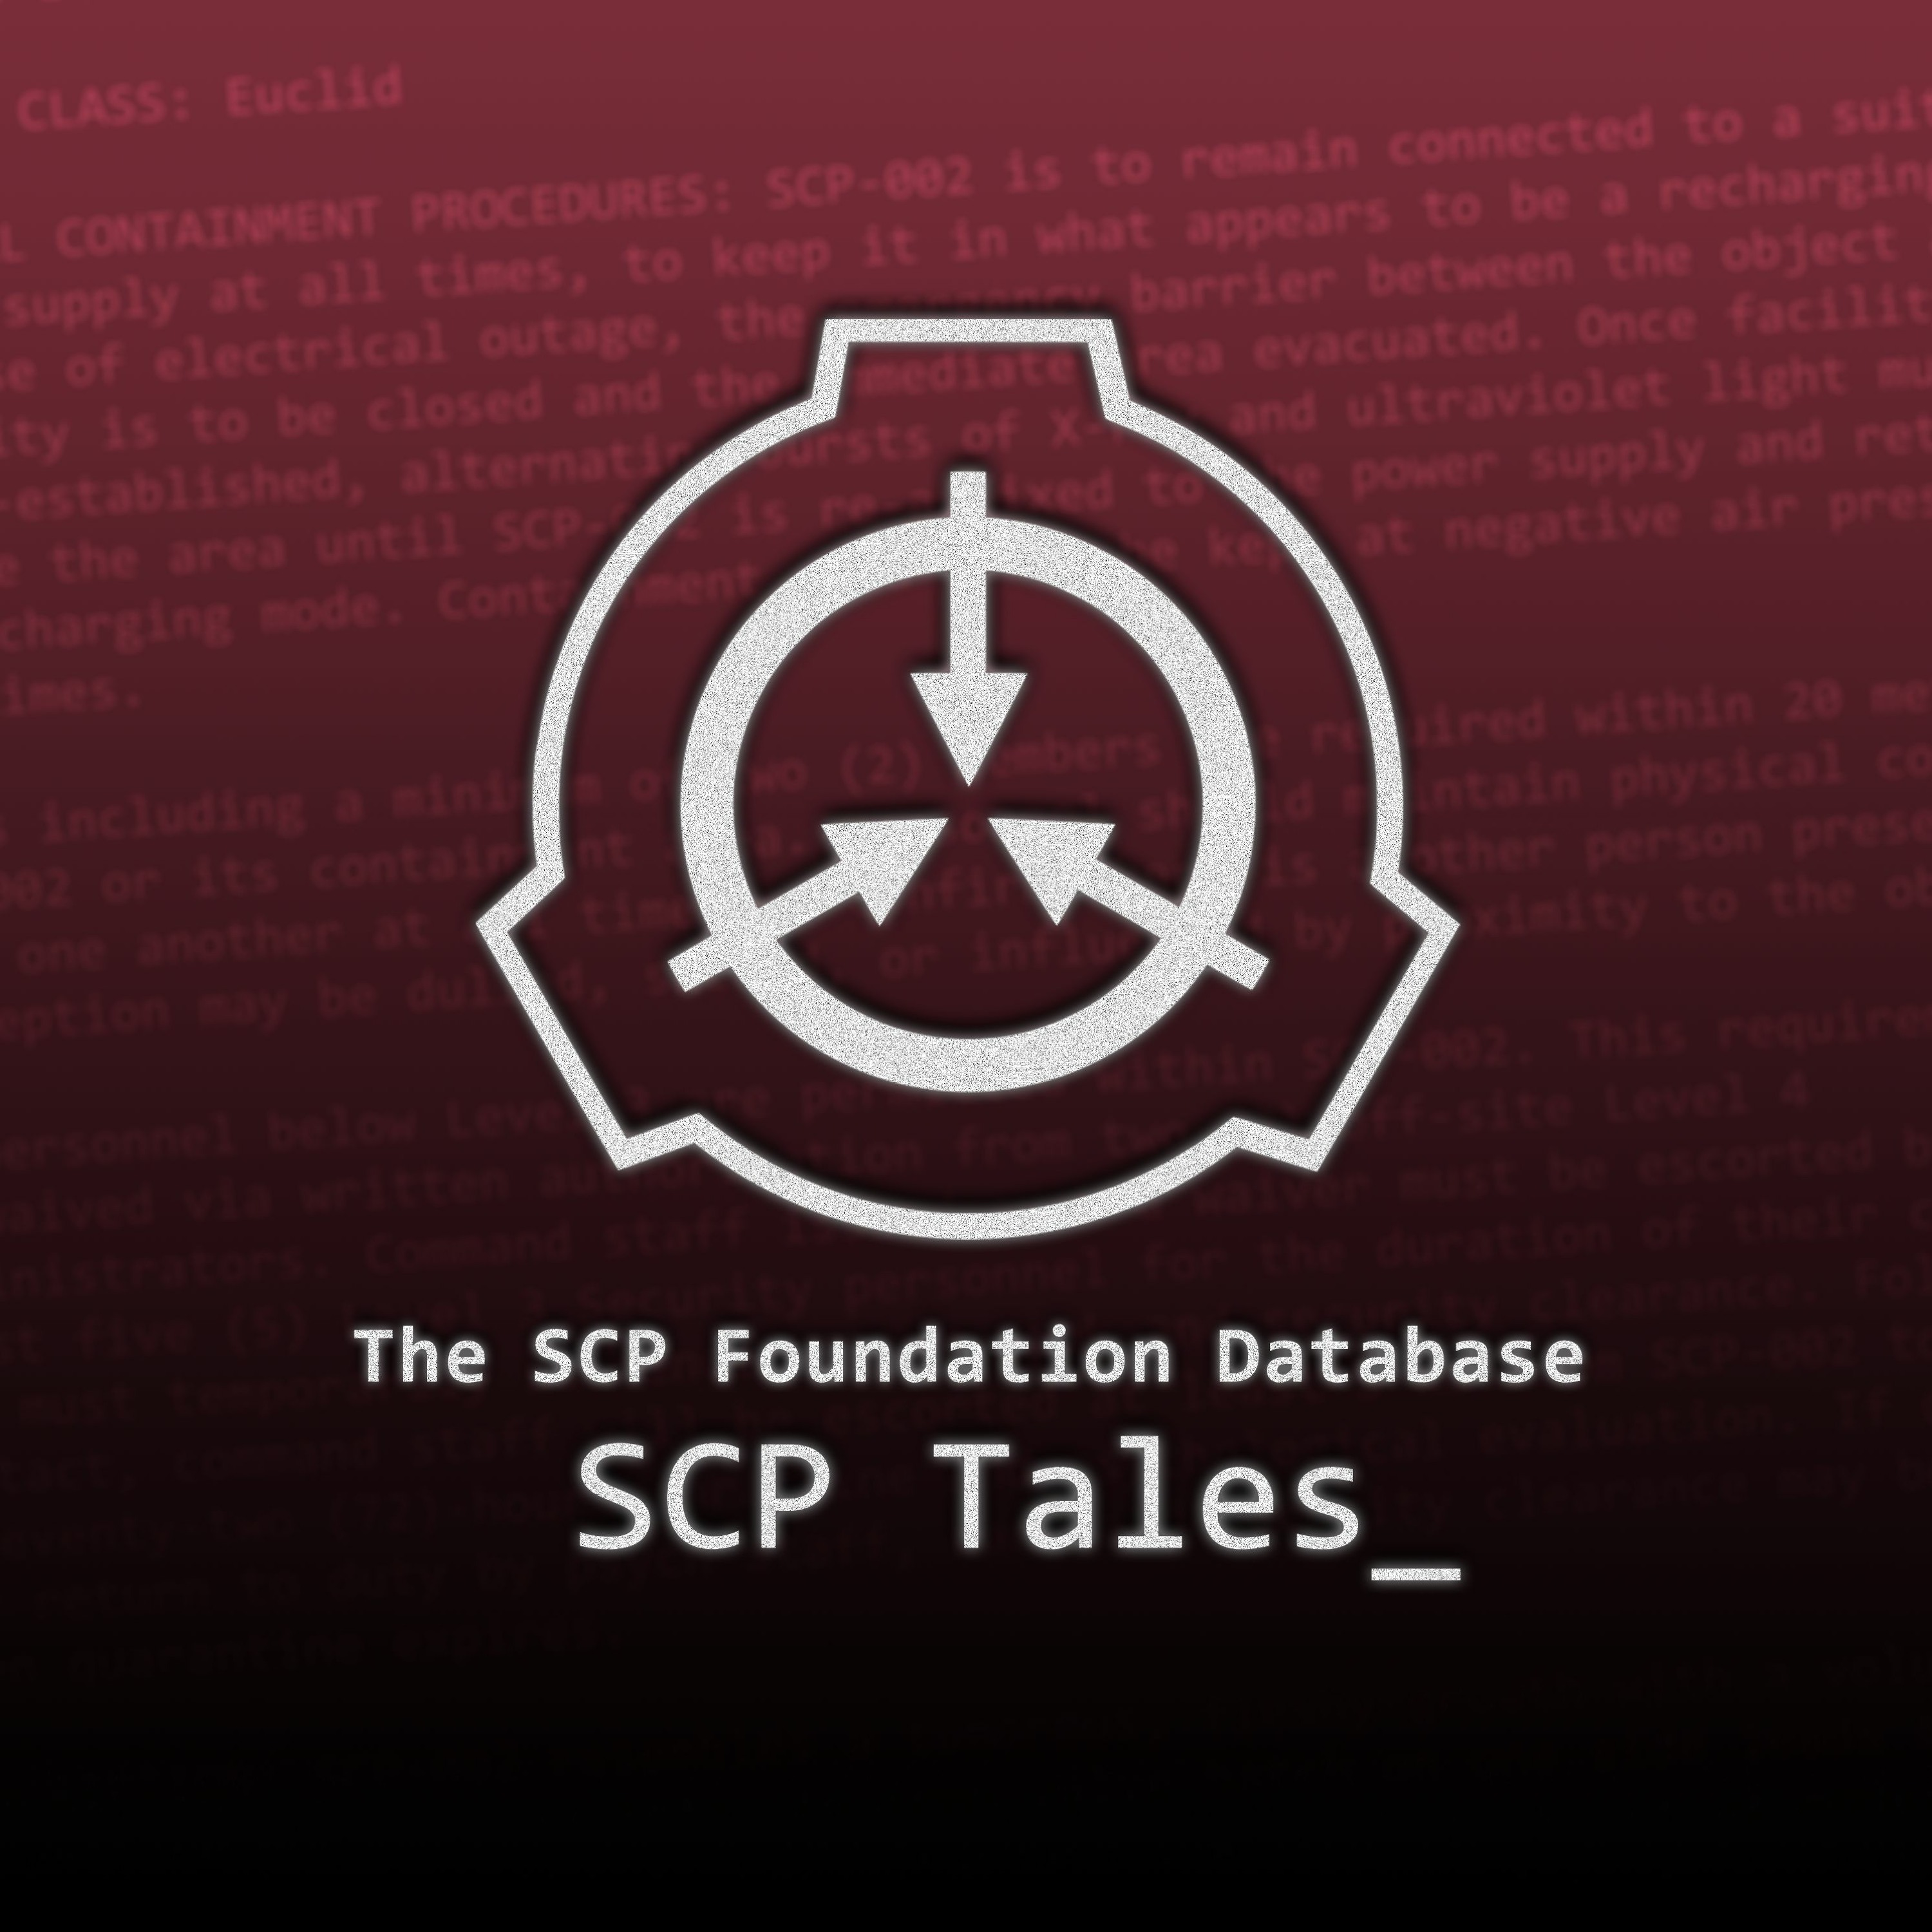 """SCP Tales, Episode 8 - """"What Passes as Normal in the Digital Age"""" [GoI-5869]"""